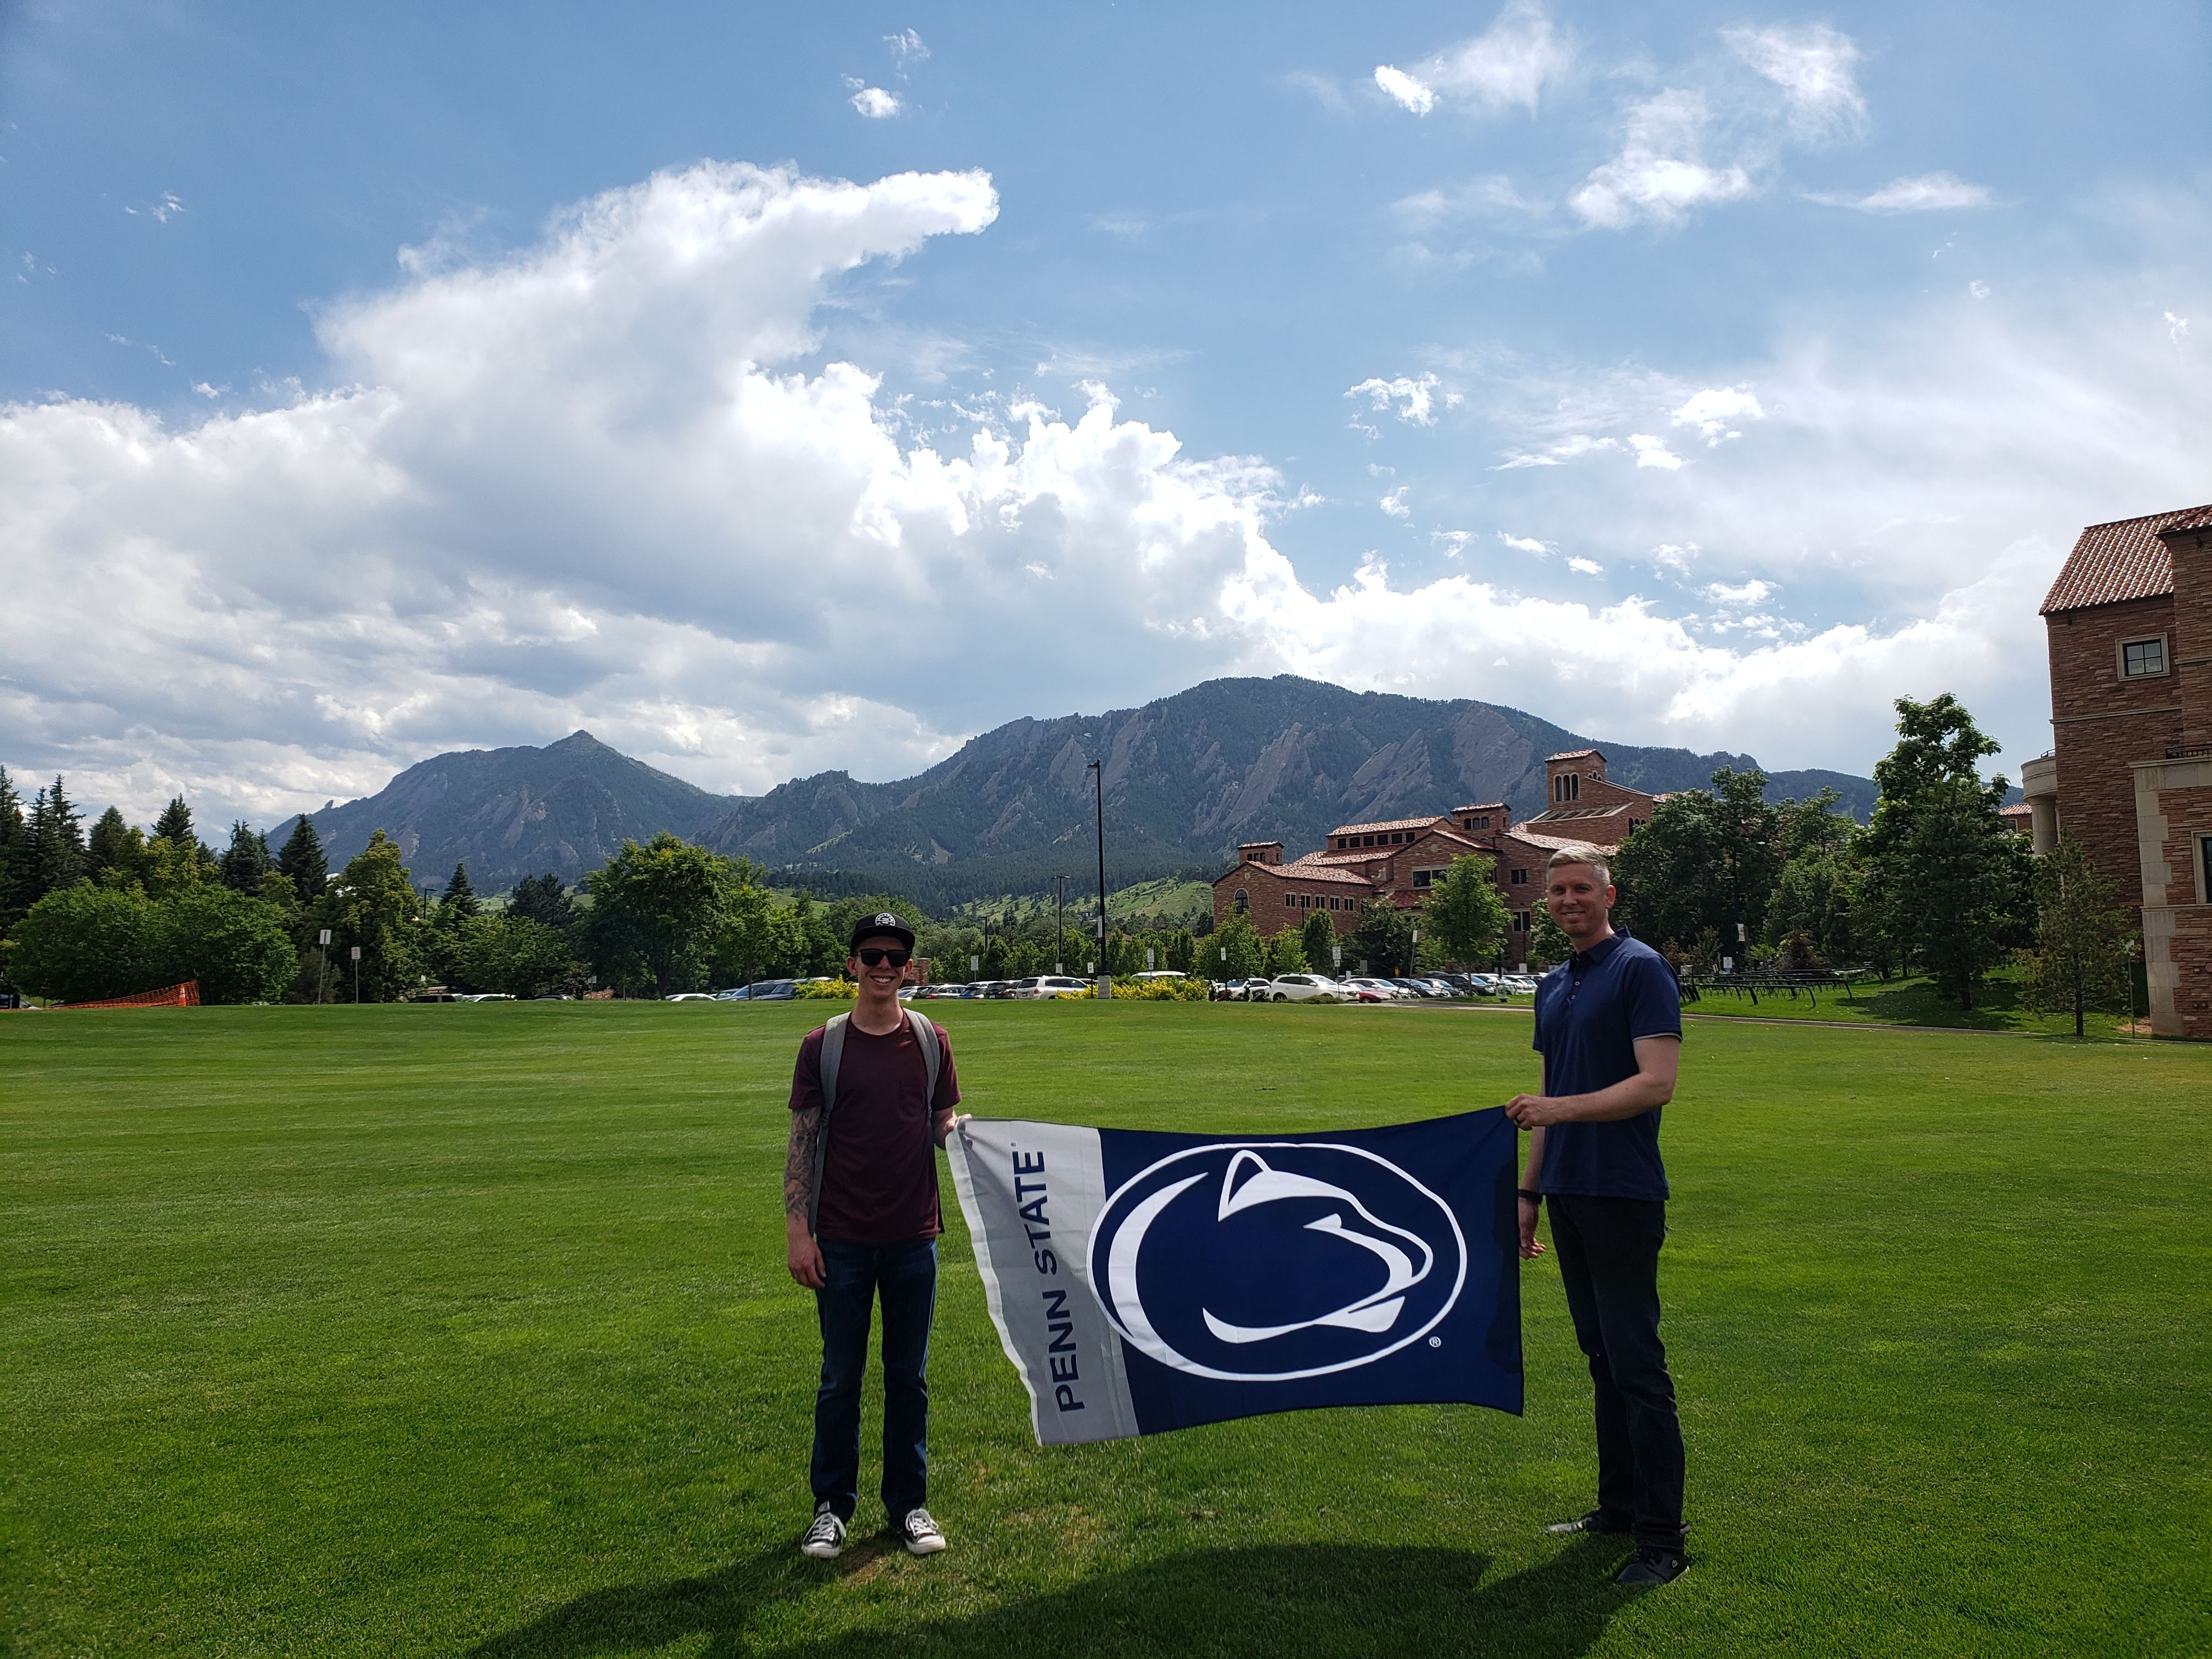 ESP students, Mason Taylor and Joshua Andresky stand on the lawn of the UC Boulder campus holding a PSU flag